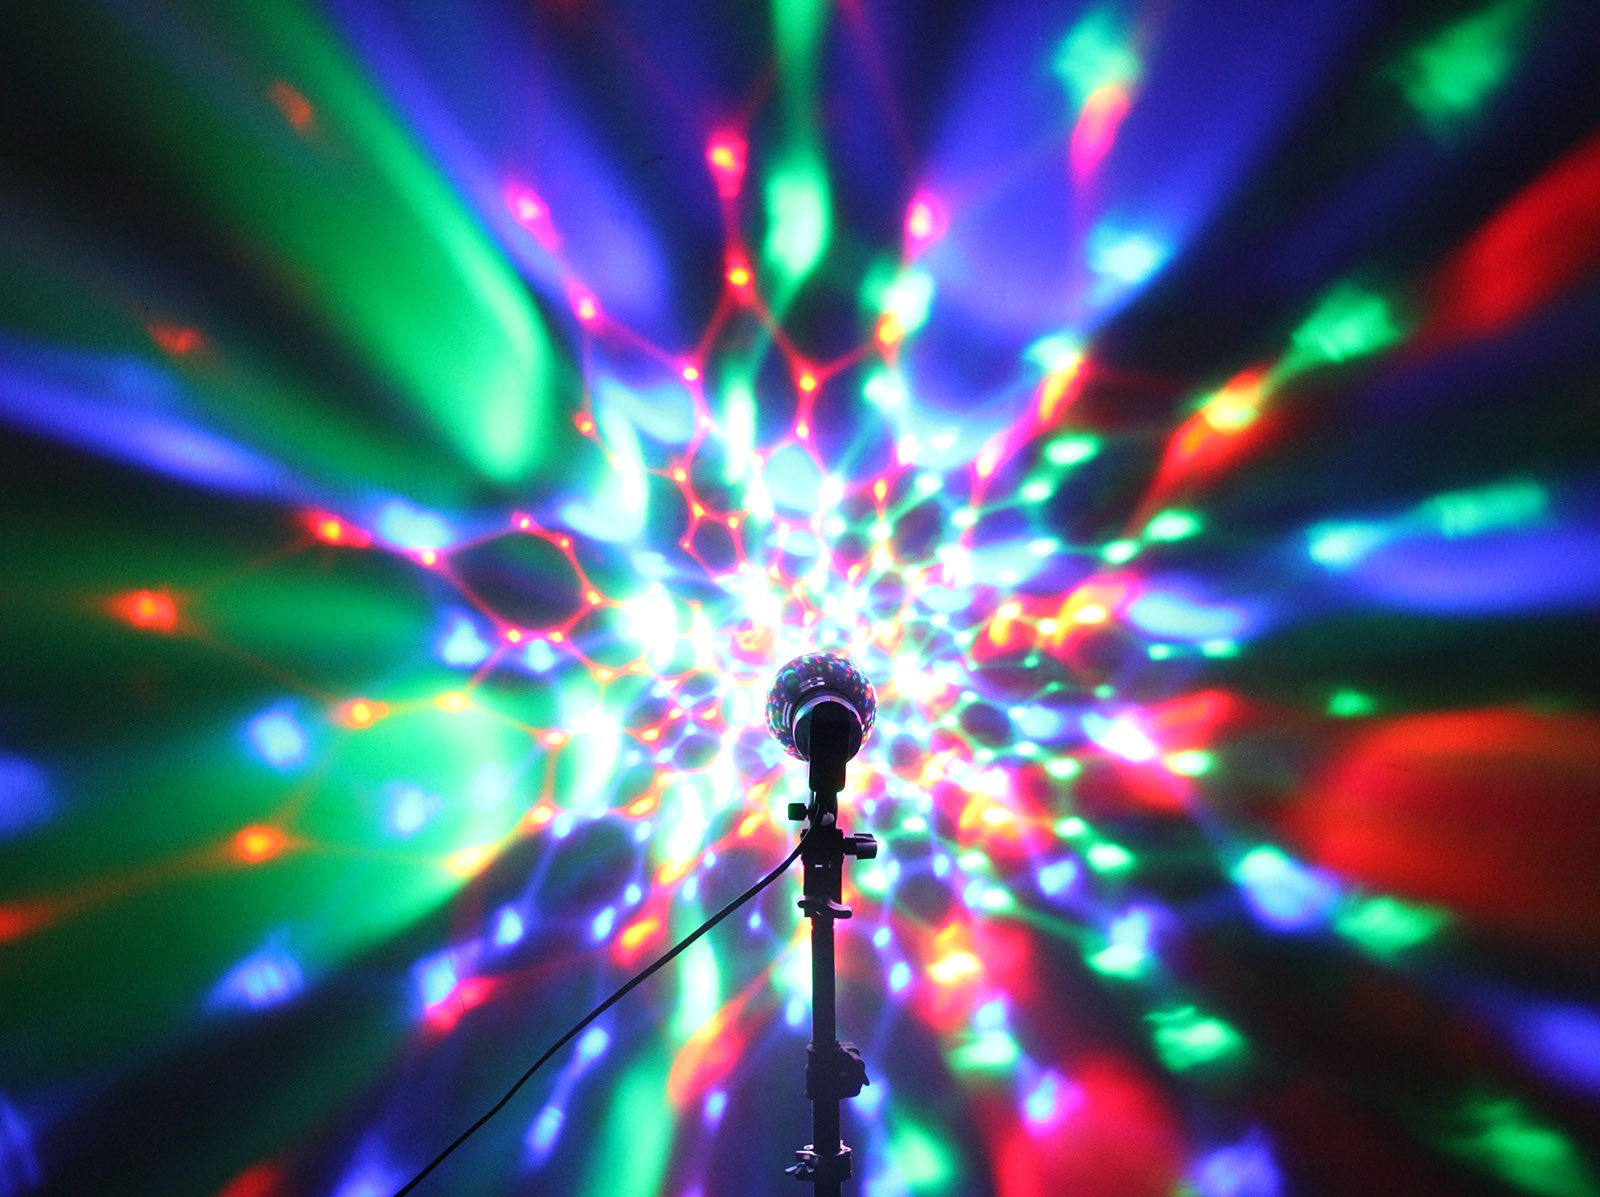 OTTFF 3W E27 Disco Ball Lamp RGB Rotating LED Sound Activated Strobe Lights Party Bulb Stage Light for Family Parties,Birthday,Desk Lamp with Remote Control by OTTFF (Image #4)